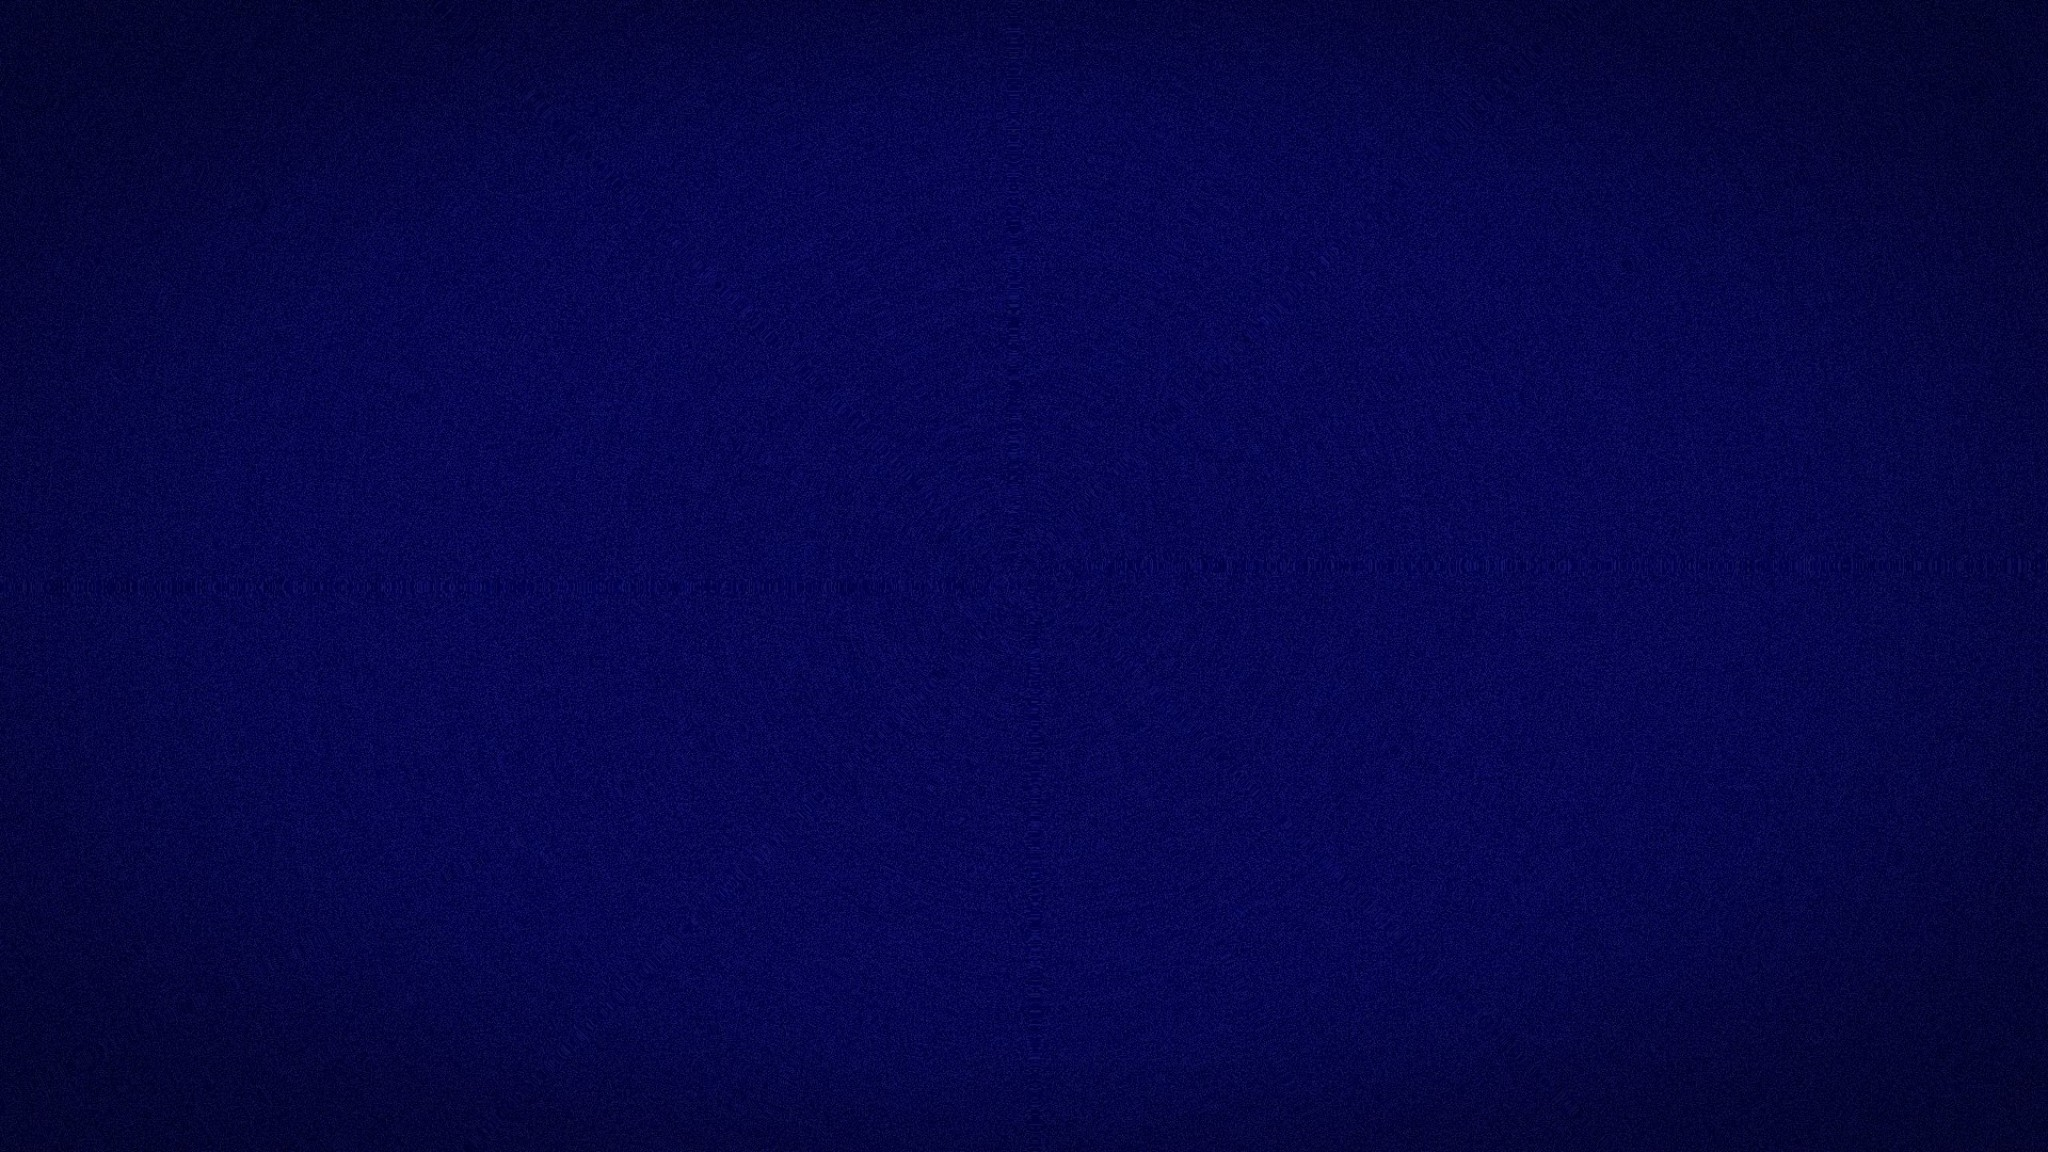 is under the blue wallpapers category of free hd wallpapers solid blue .